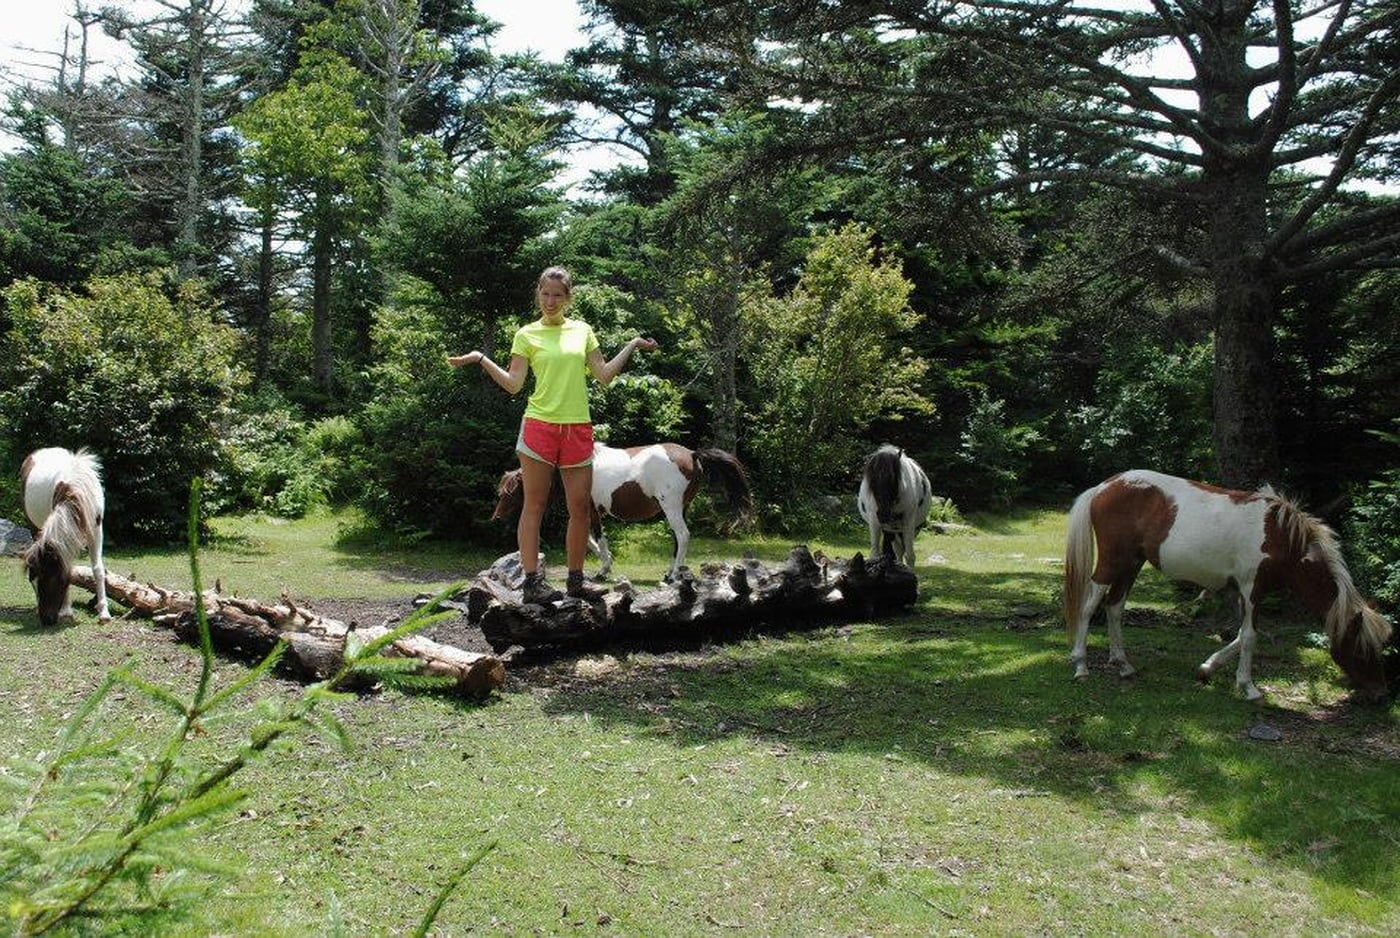 Hiker stands on log in between group of spotted grazing ponies.